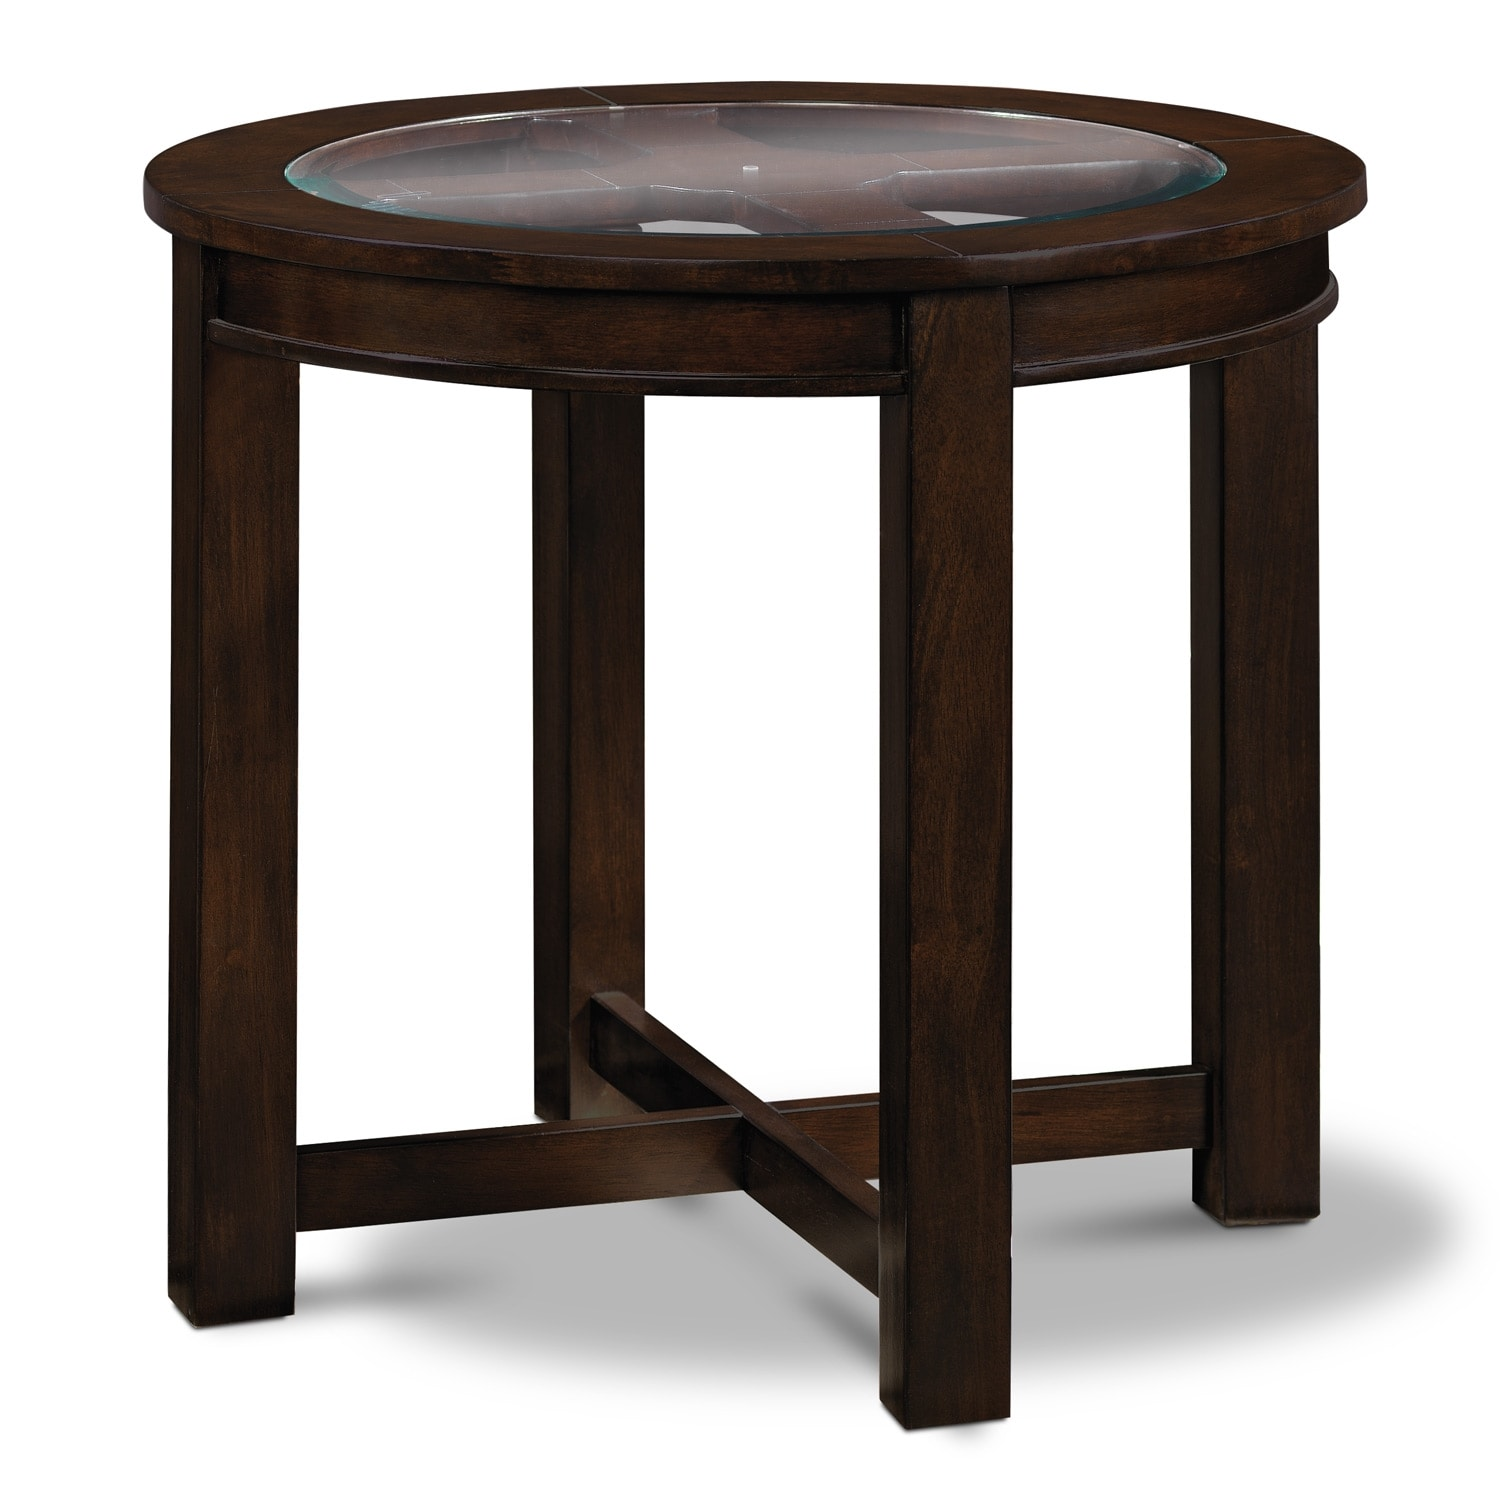 Four Corners End Table - Merlot